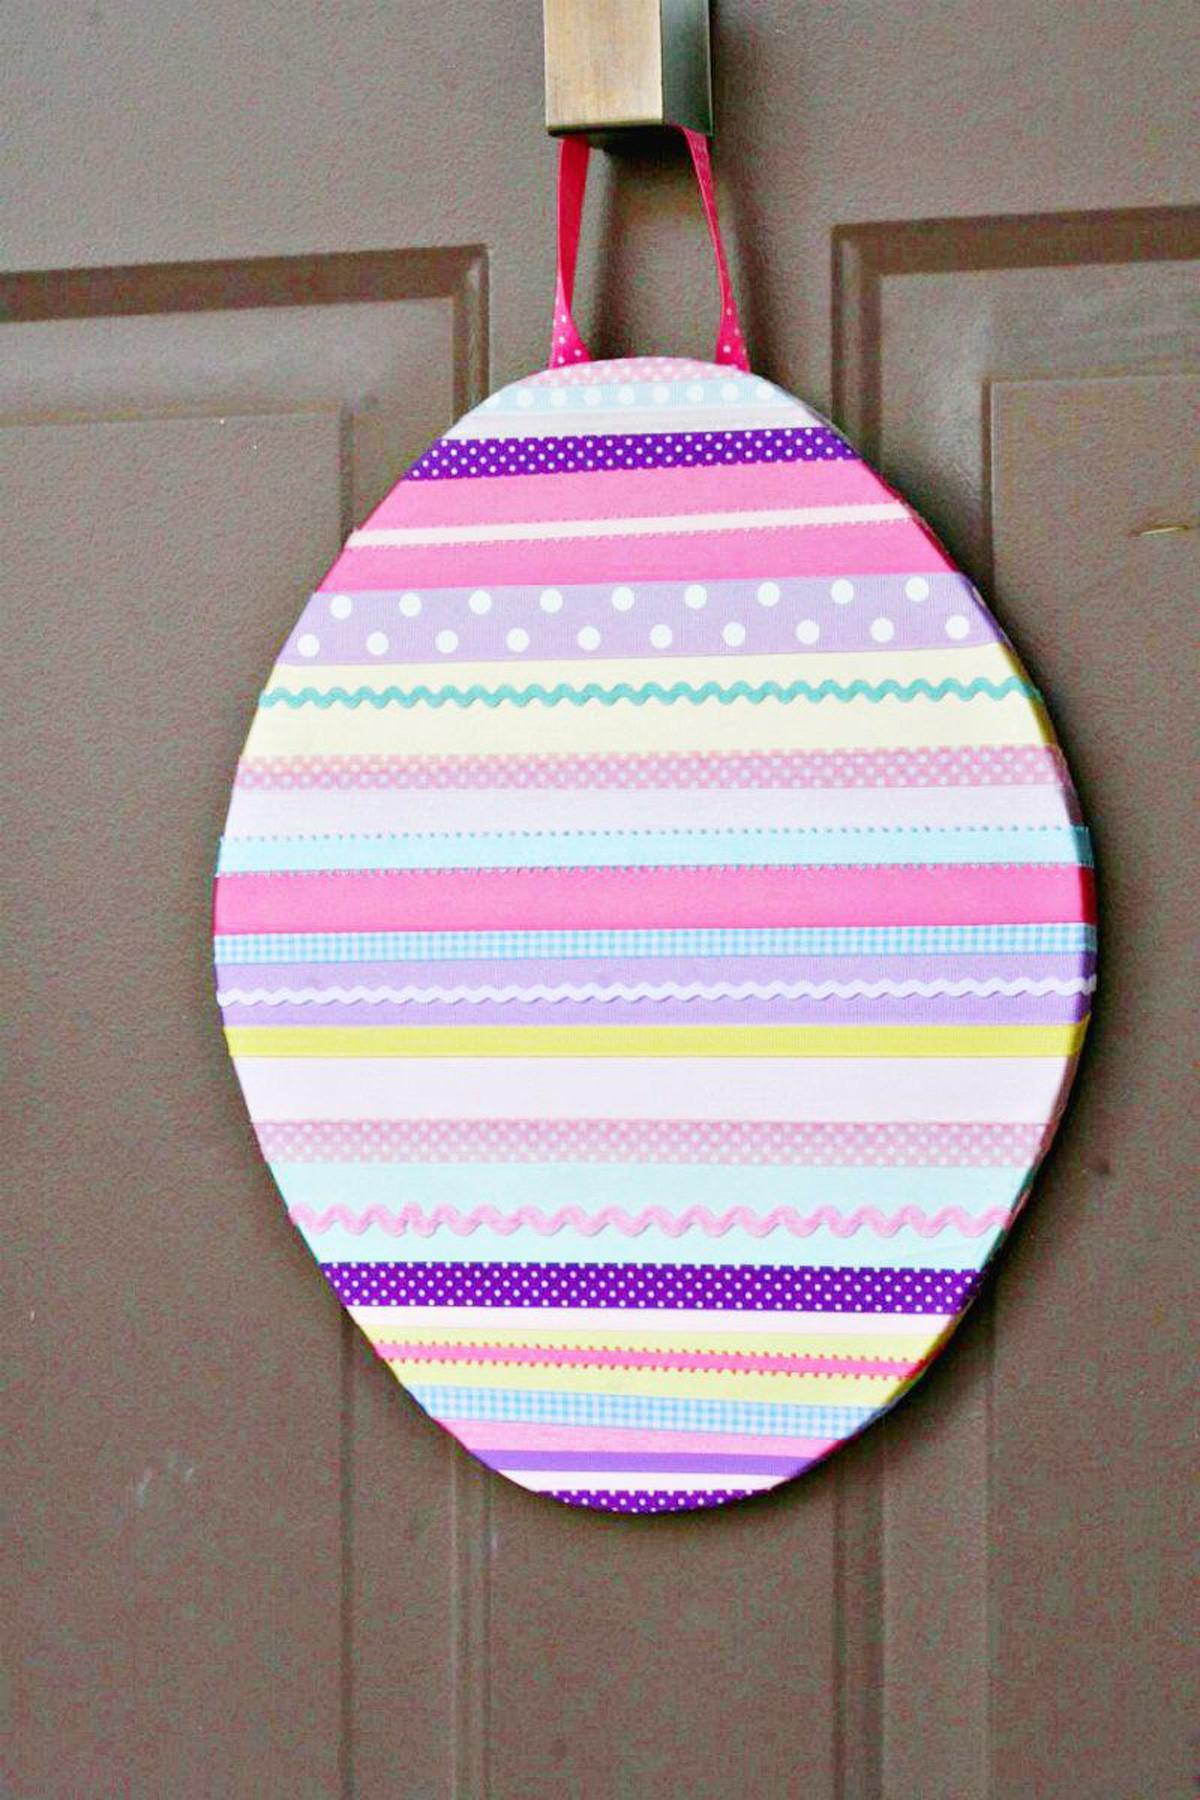 Round Your Ribbons Diy Easter Wall Art Evite